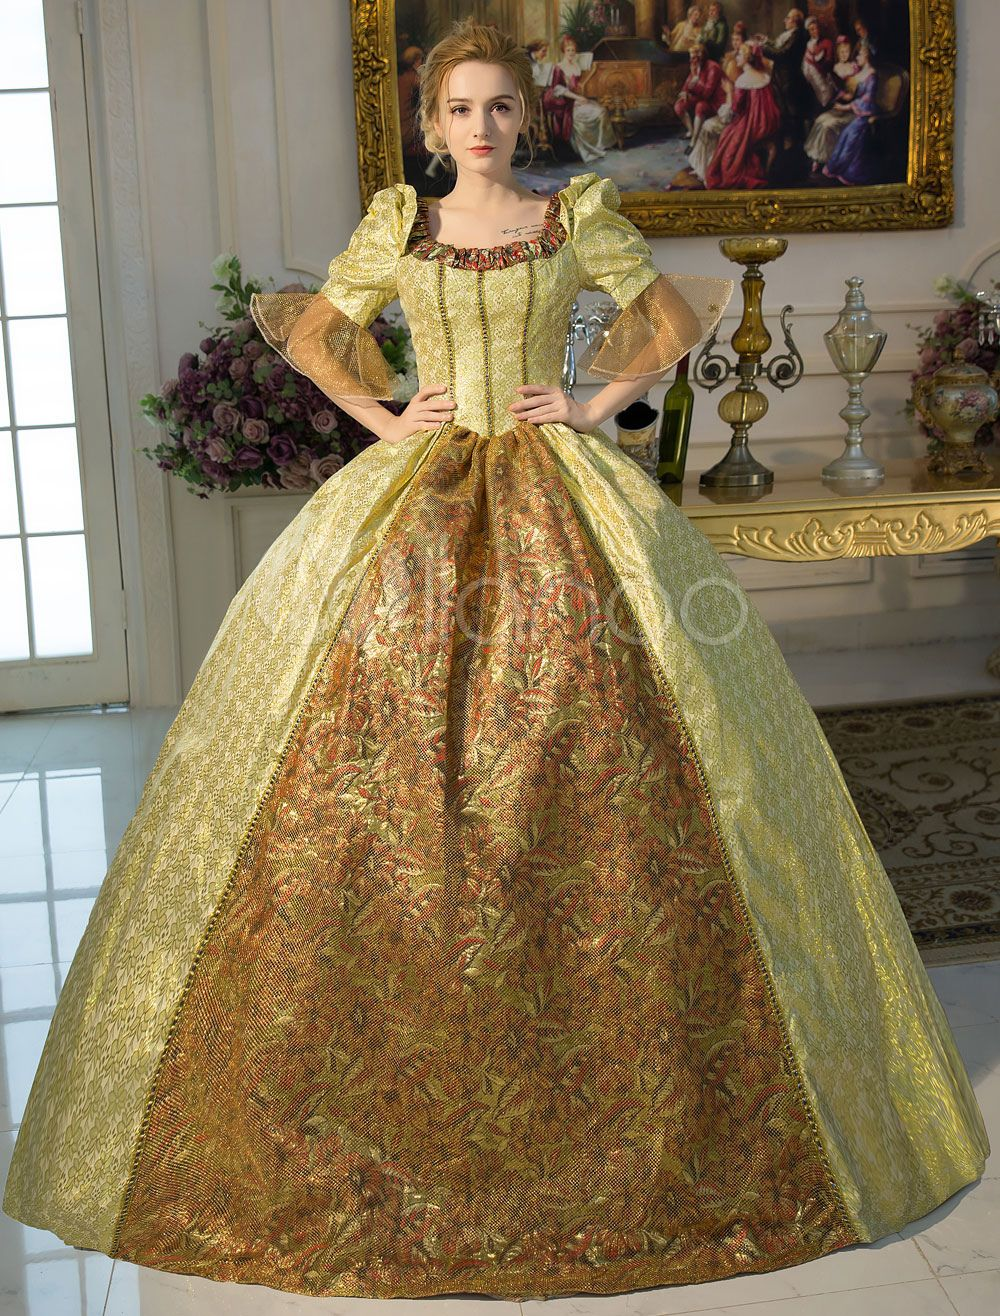 Gold Retro Costume Baroque Squared Neckline Tunic Ball Gown Dress Halloween Victorian Dress Costume Vintage Long Dress Ball Gowns [ 1316 x 1000 Pixel ]